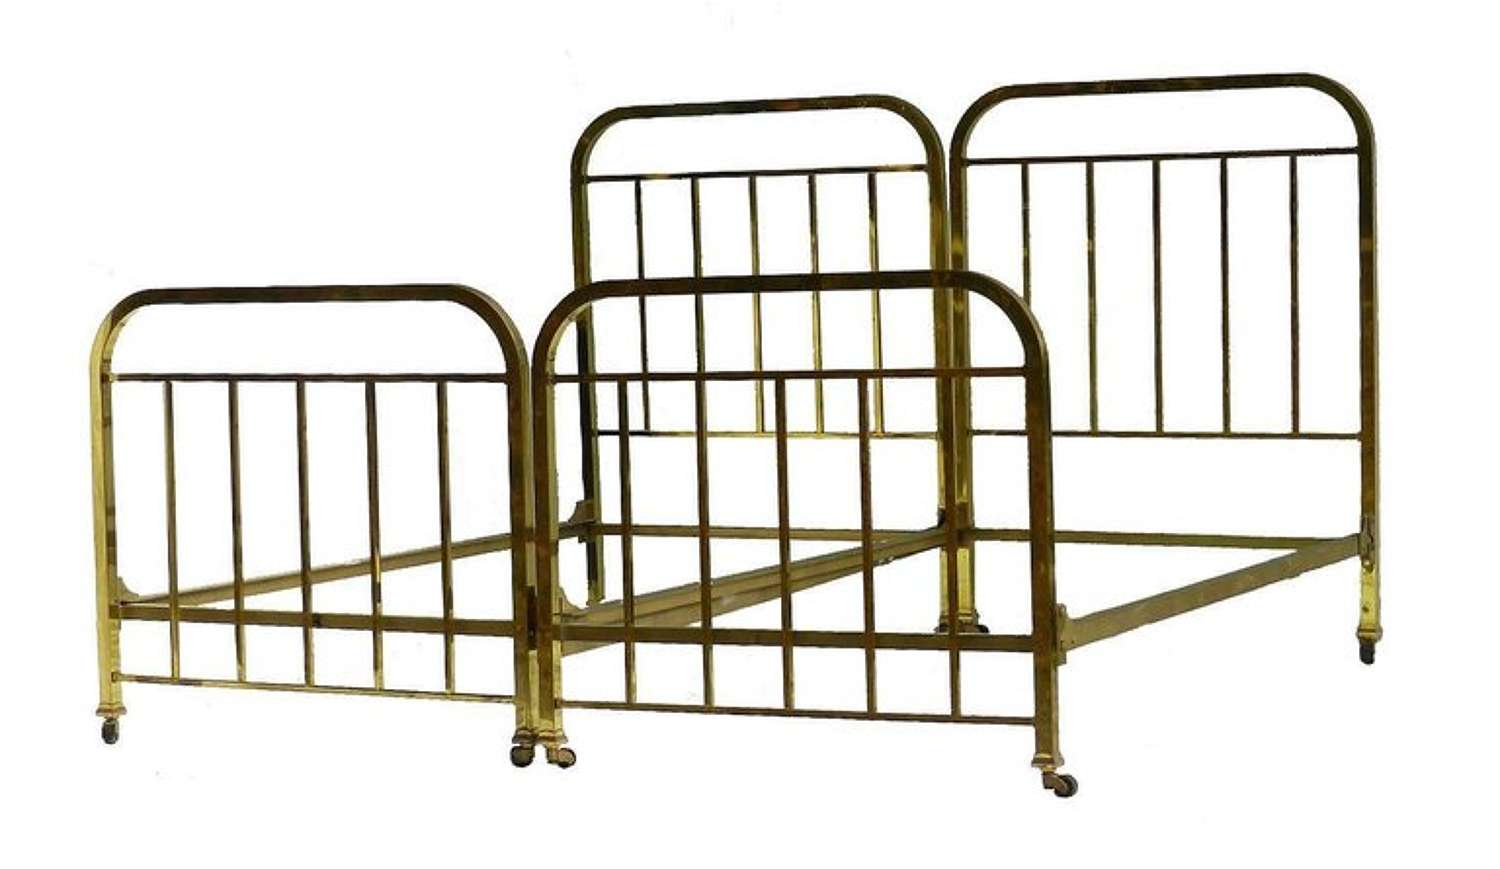 Pair of Art Deco Brass Beds French Single Twin c1930 with makers label